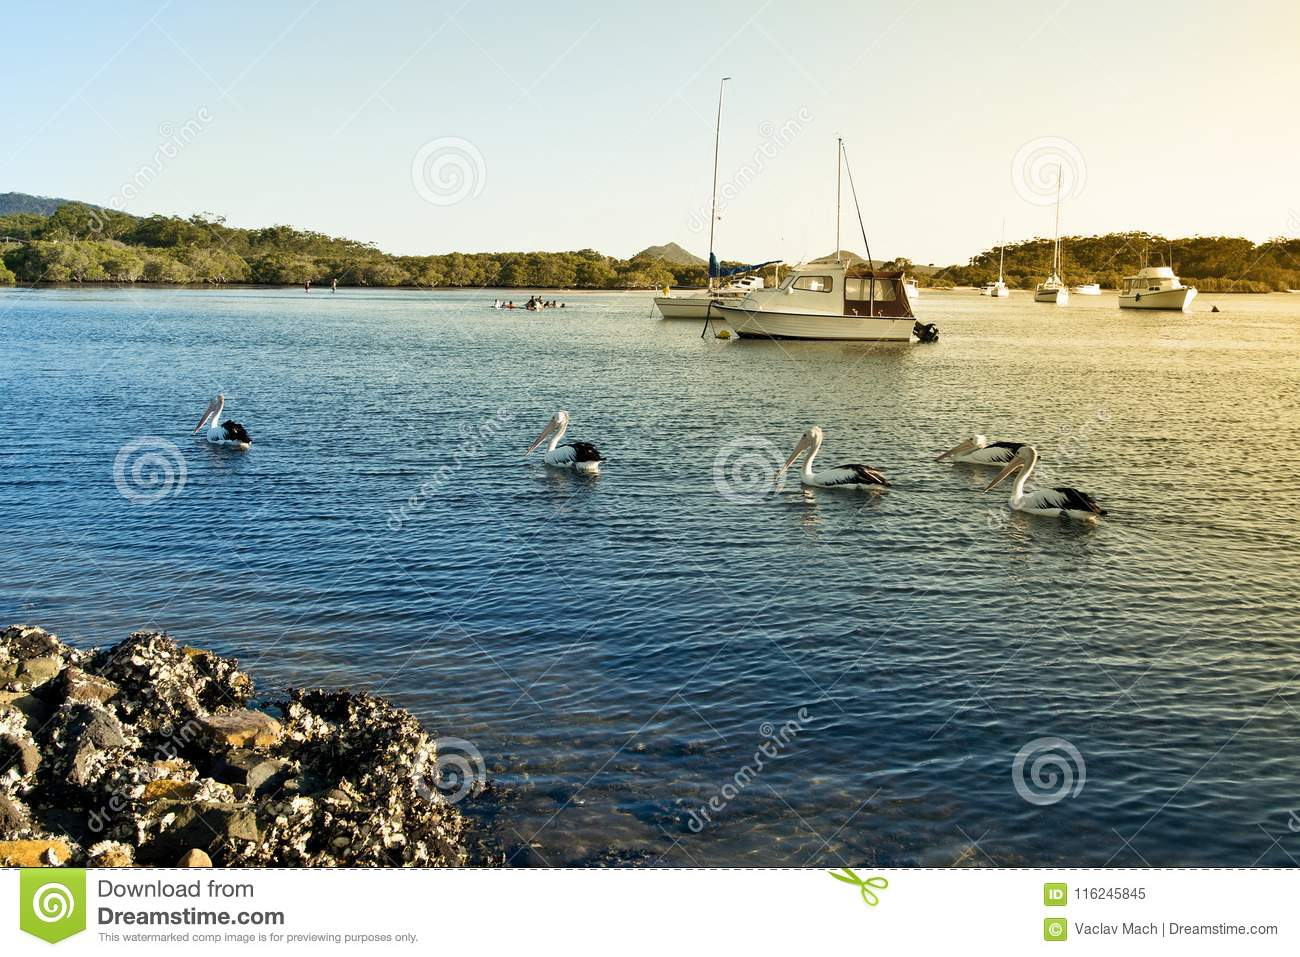 Pelicans and boats on Myall Lake